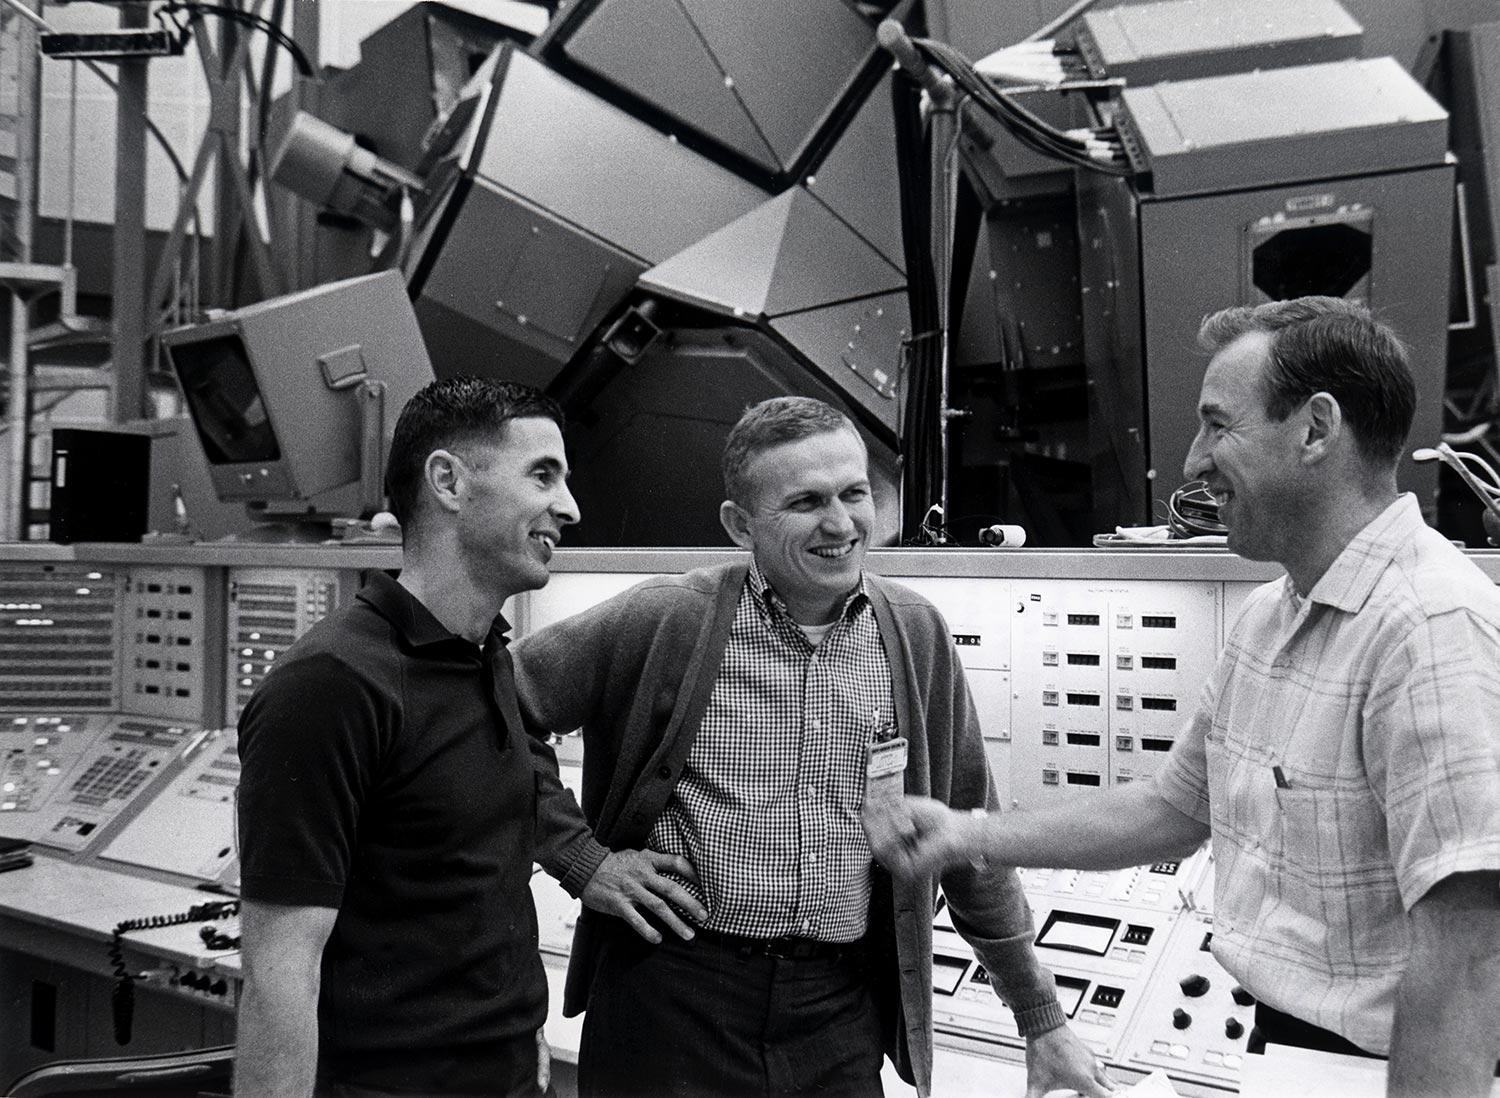 Apollo 8 crew members paused before the mission simulator during training for the first manned lunar orbit mission. Frank Borman, Commander (center); James Lovell, Command Module Pilot (right); and William Anders, Lunar Module Pilot (left). December 17, 1968.. From Robert Stone's 'Chasing the Moon.' Courtesy of American Experience